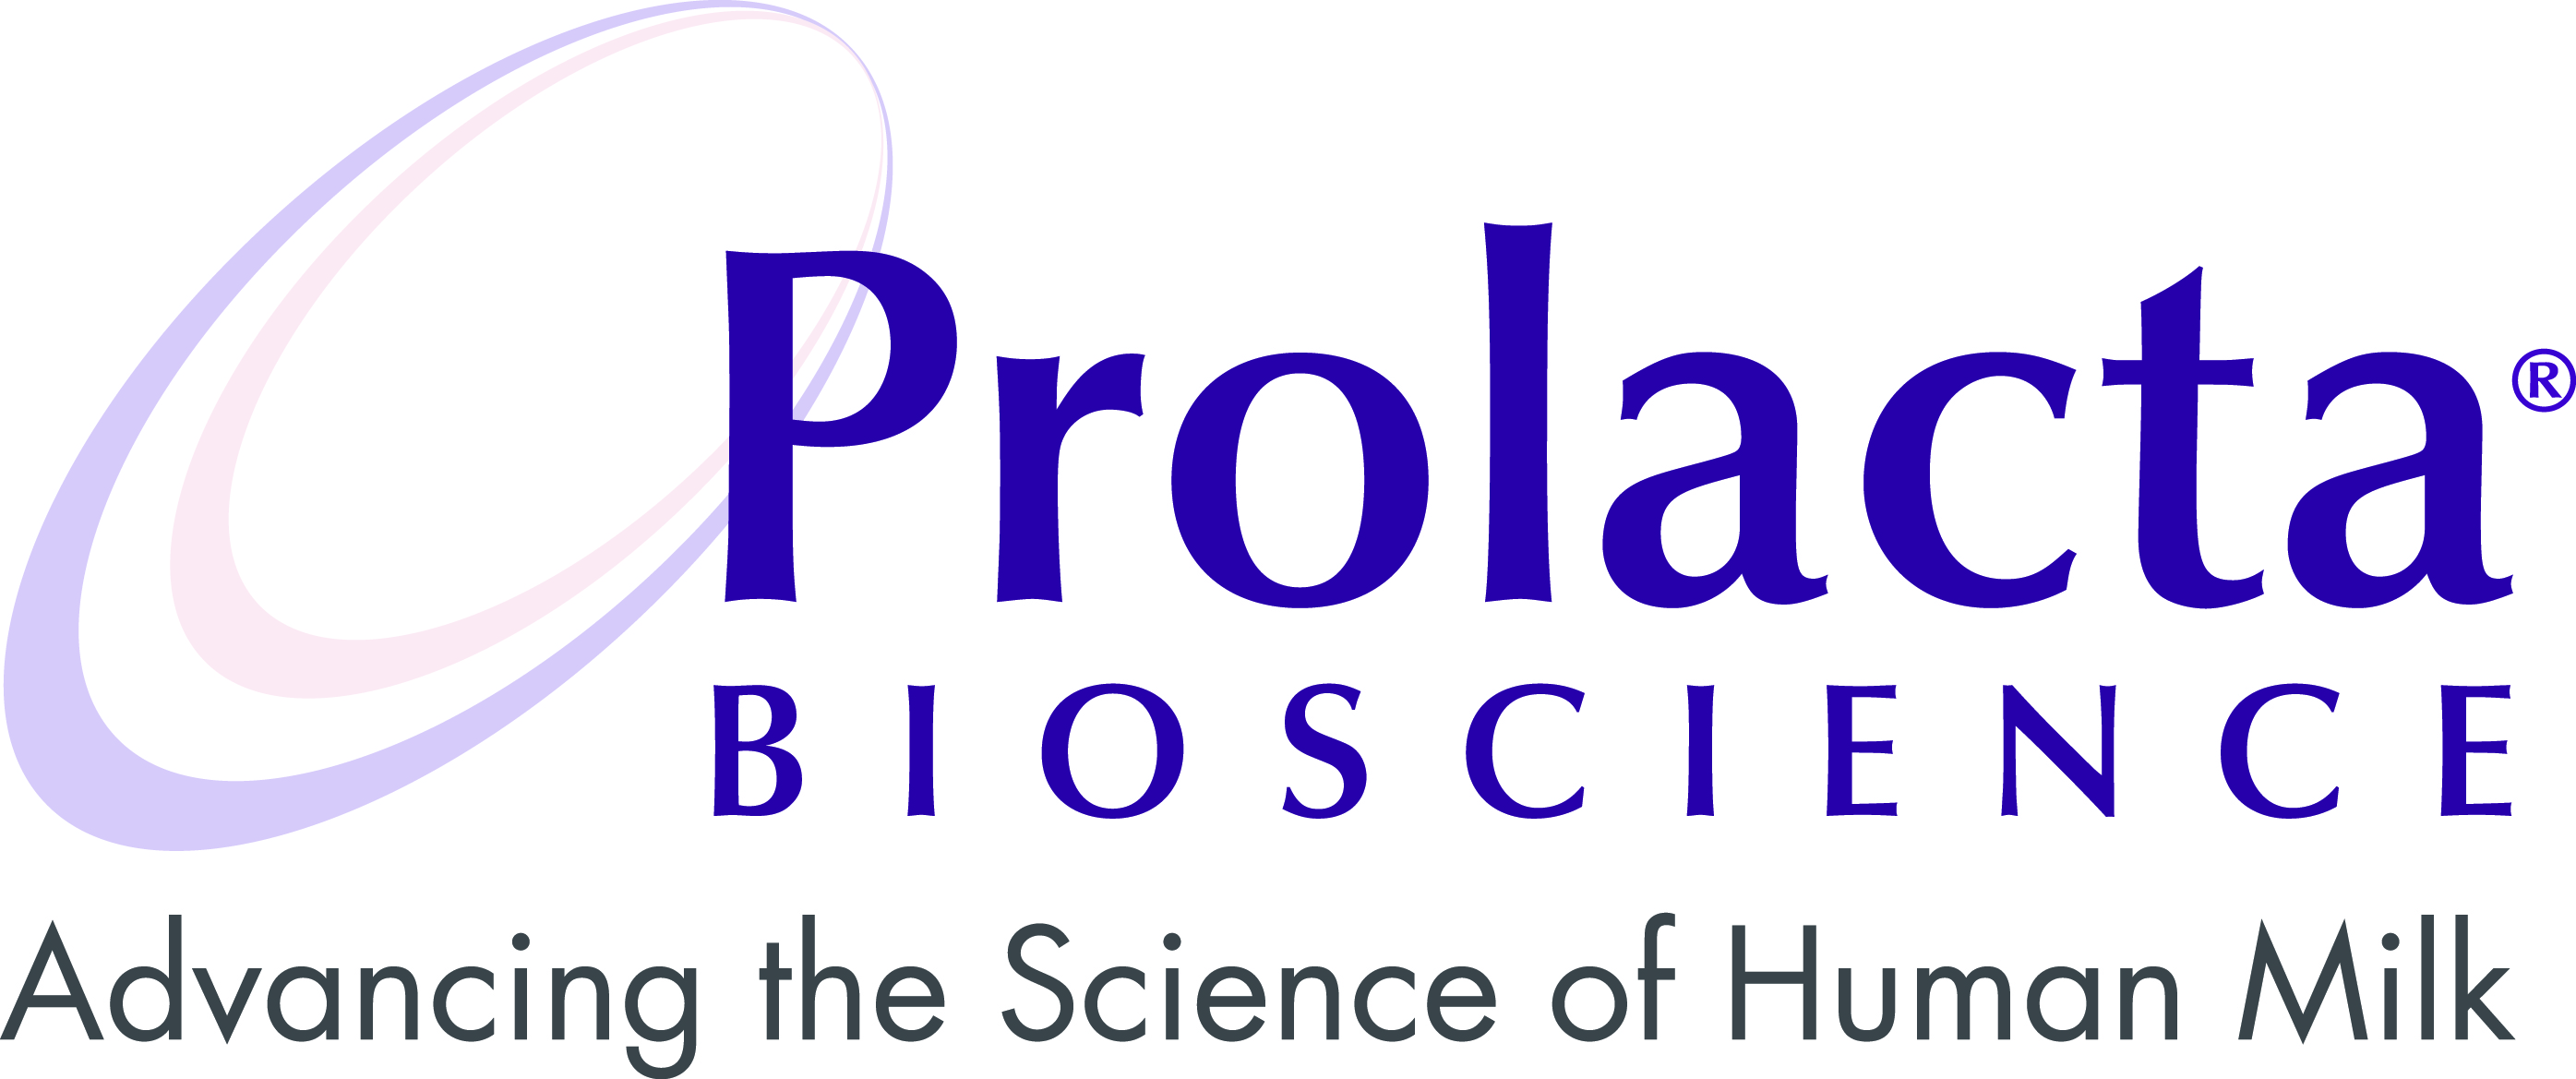 Prolacta logo full-color